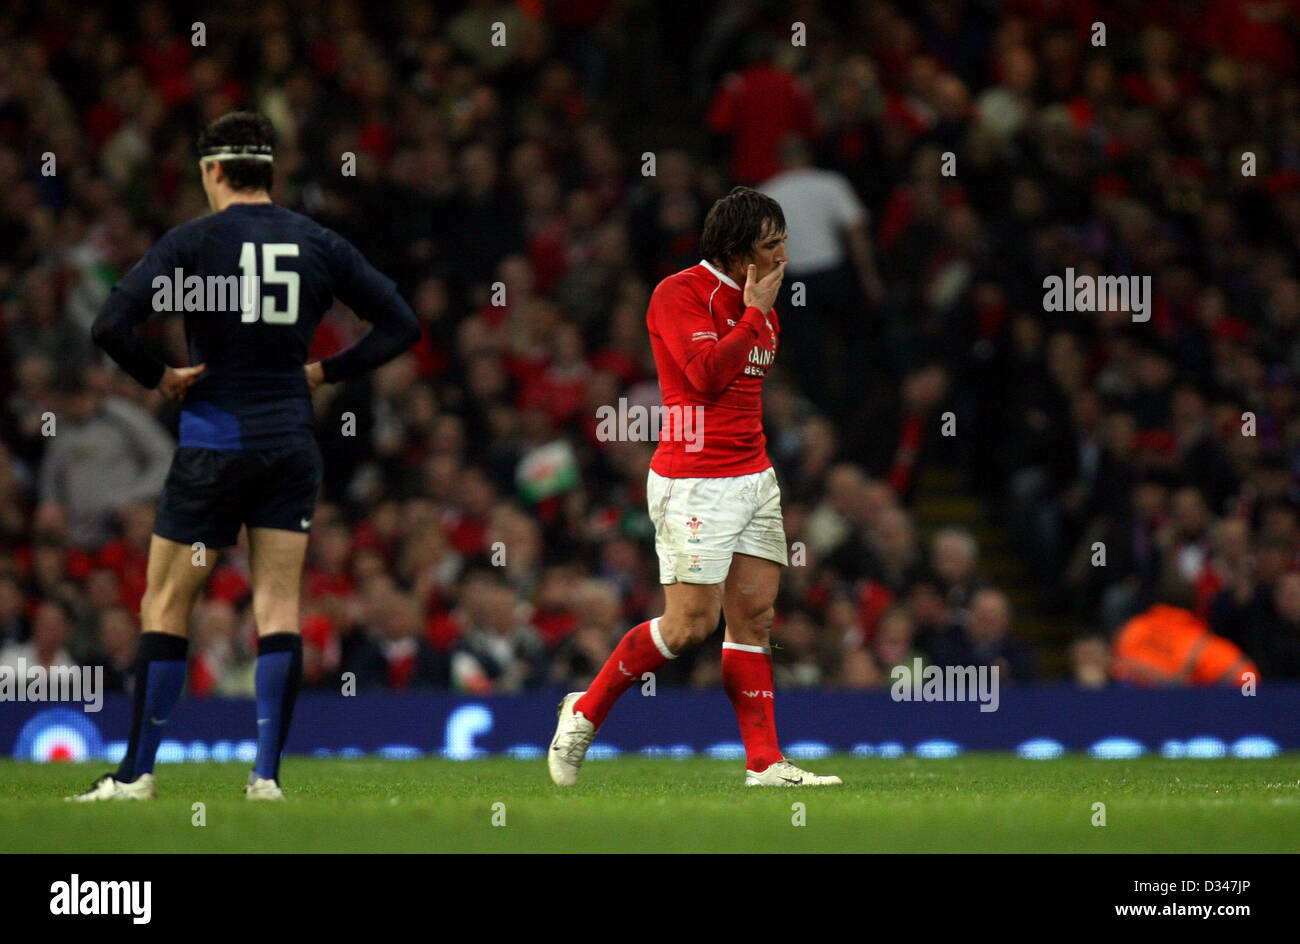 15.03.08. Wales v France. Wales' Gavin Henson heads for the bench after being yellow-carded. - Stock Image